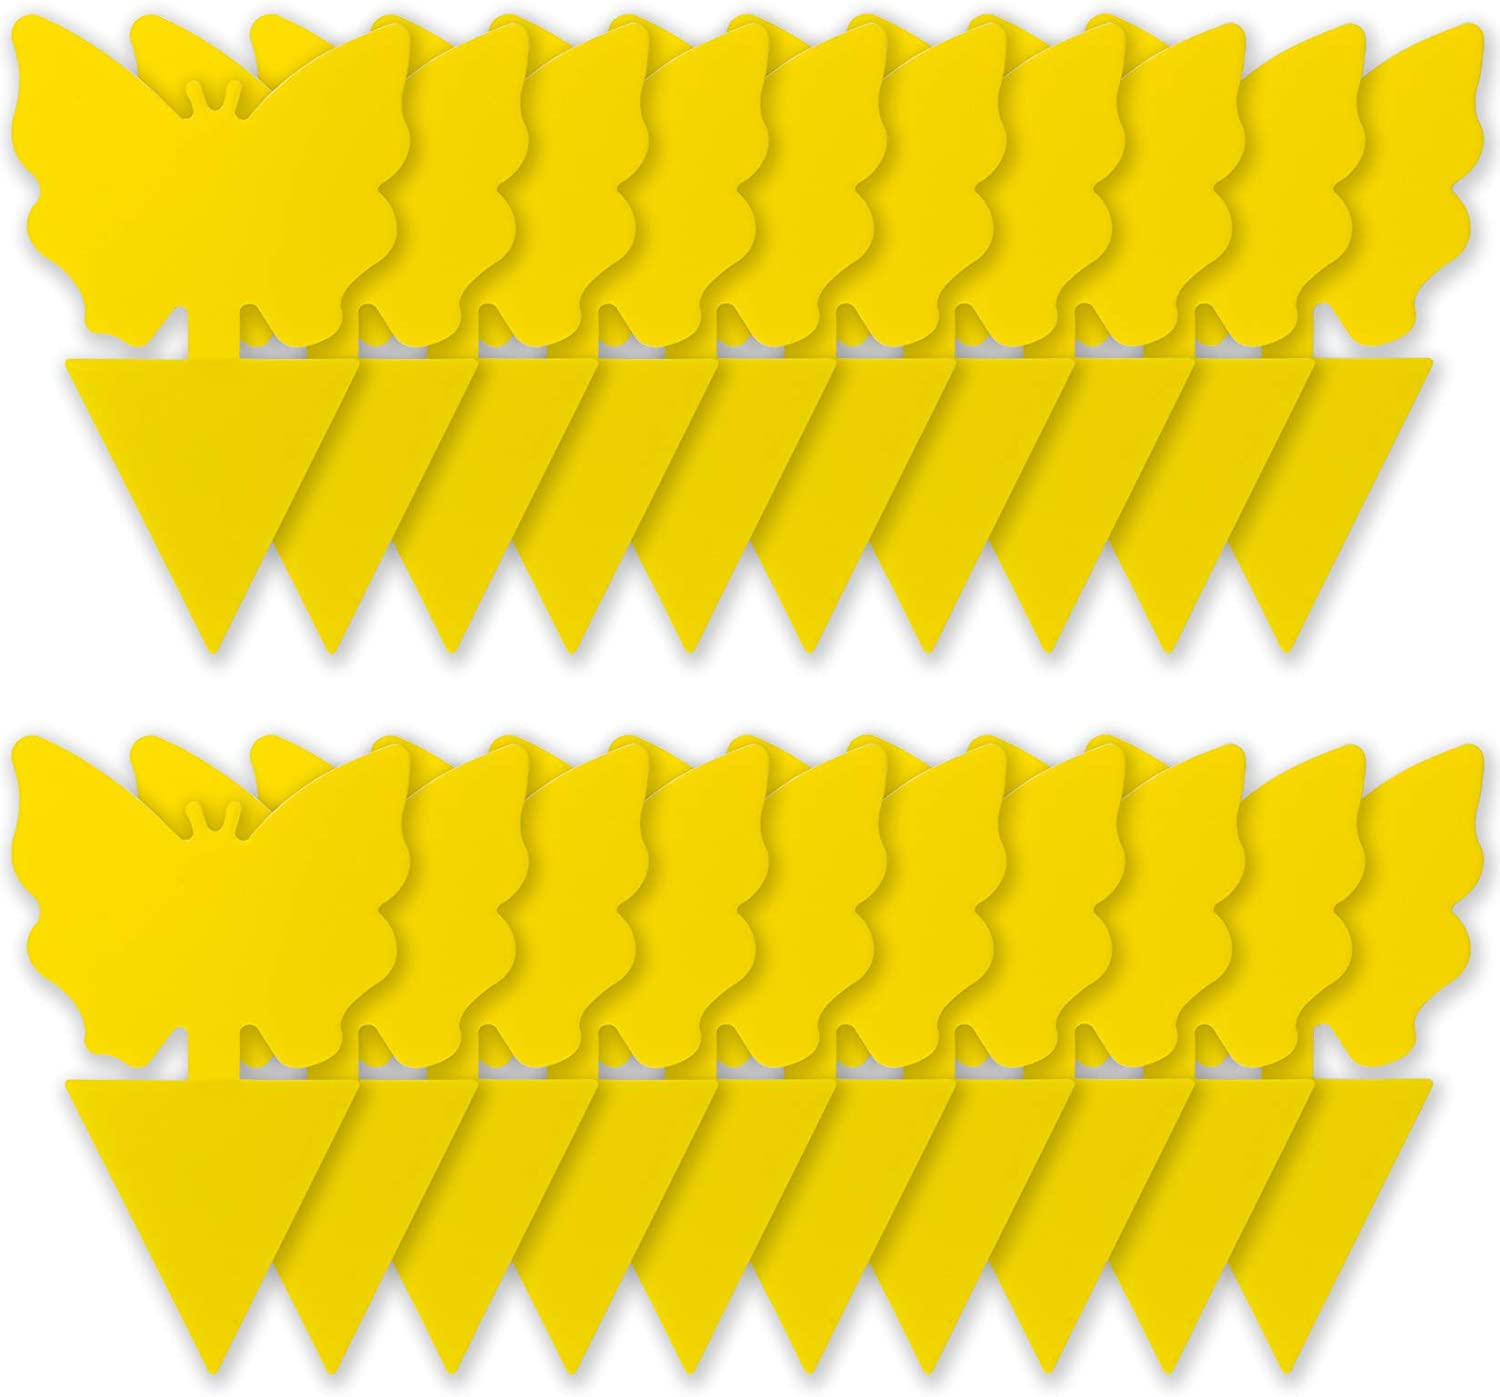 Yellow Sticky Traps, Dual-Sided, for Capturing Insects Like Gnats, Fruit Flies, Aphids, 20PCS